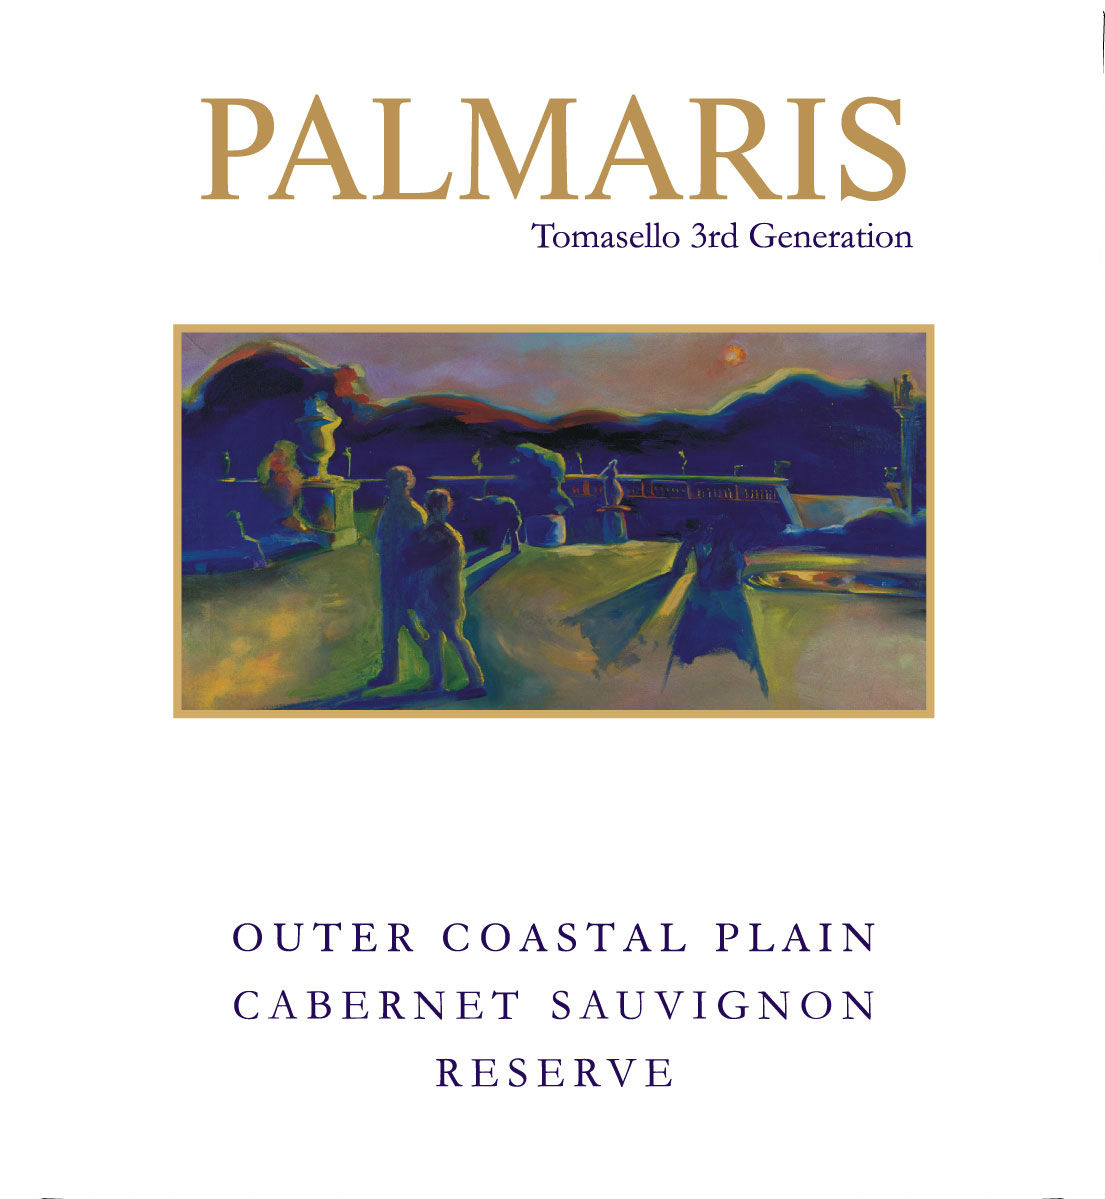 Product Image for Palmaris 2010 Outer Coastal Plain Cabernet Sauvignon Reserve